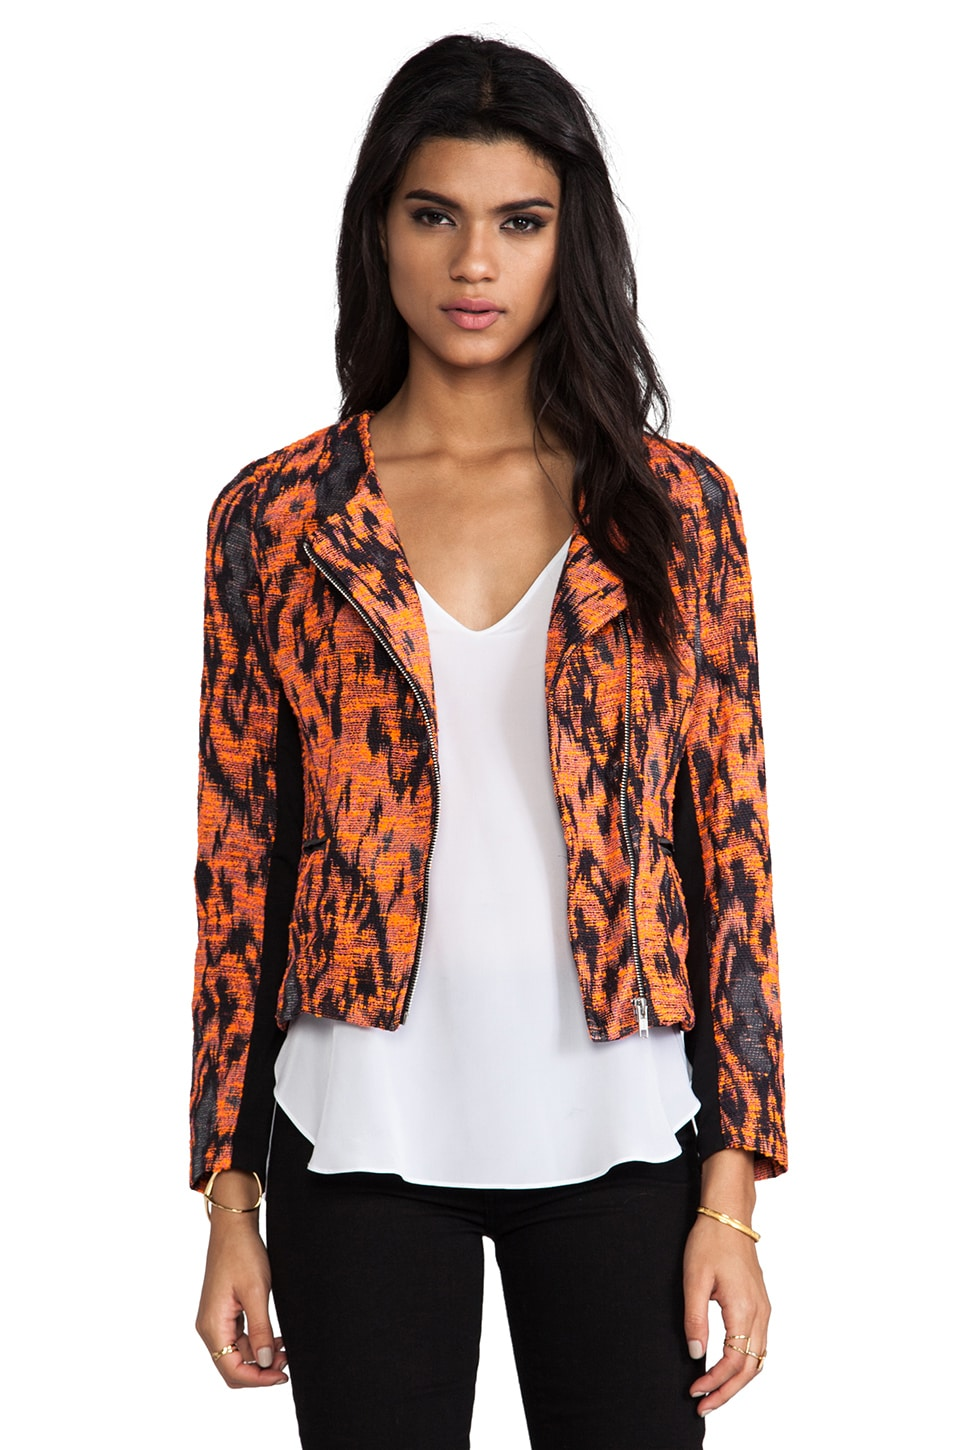 MM Couture by Miss Me Printed Jacket in Black & Orange